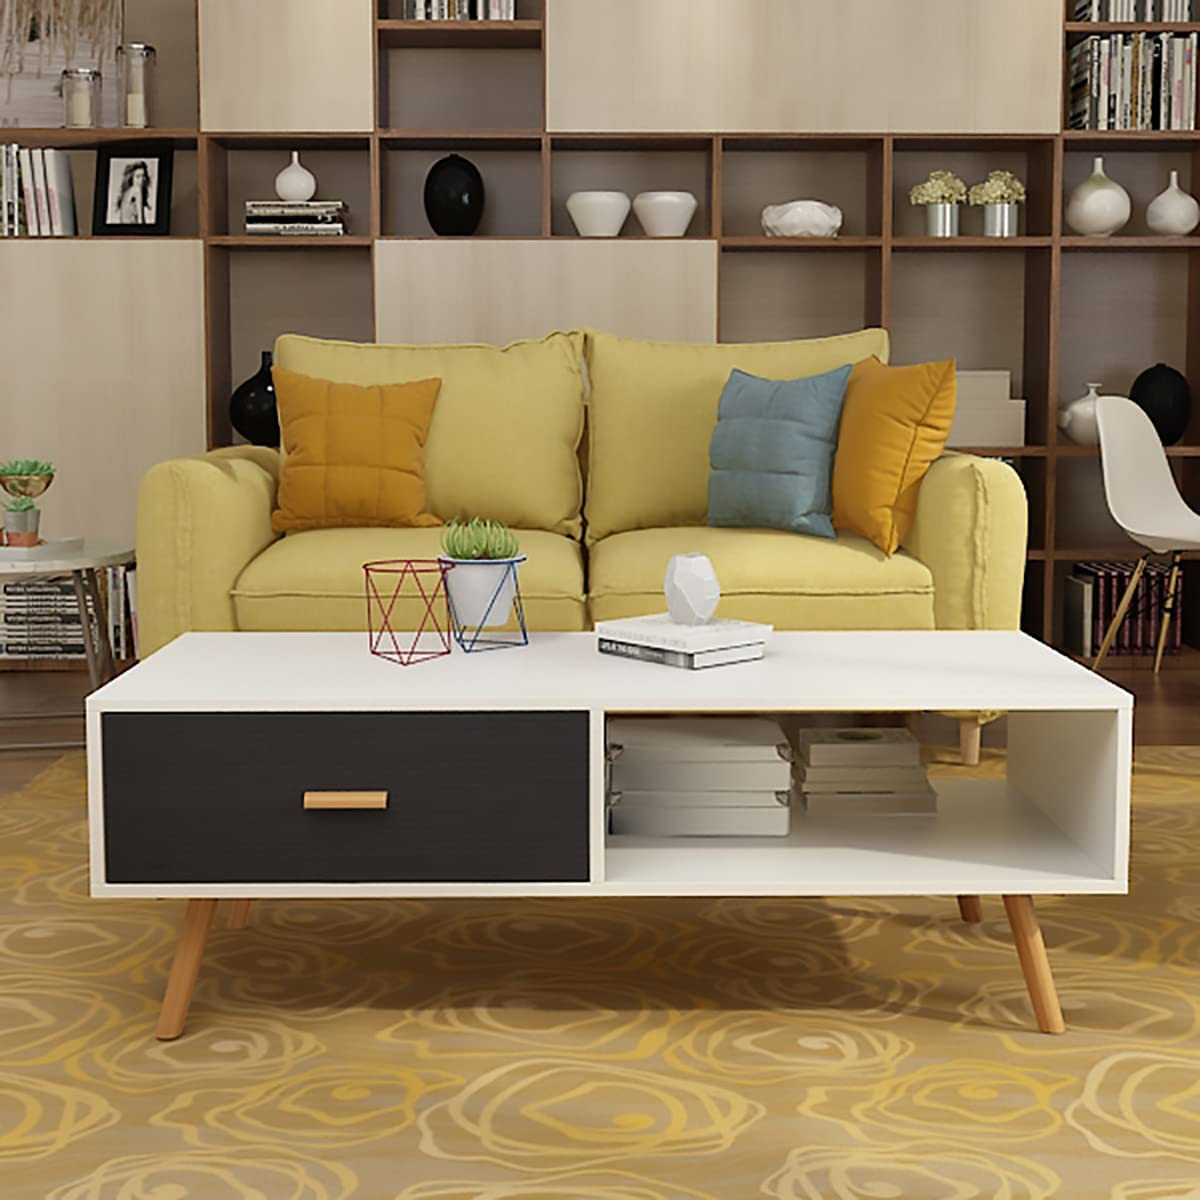 FangsGo Modern Coffee Table Save money Tampa Mall with Storage Shelf Drawer Rectan and